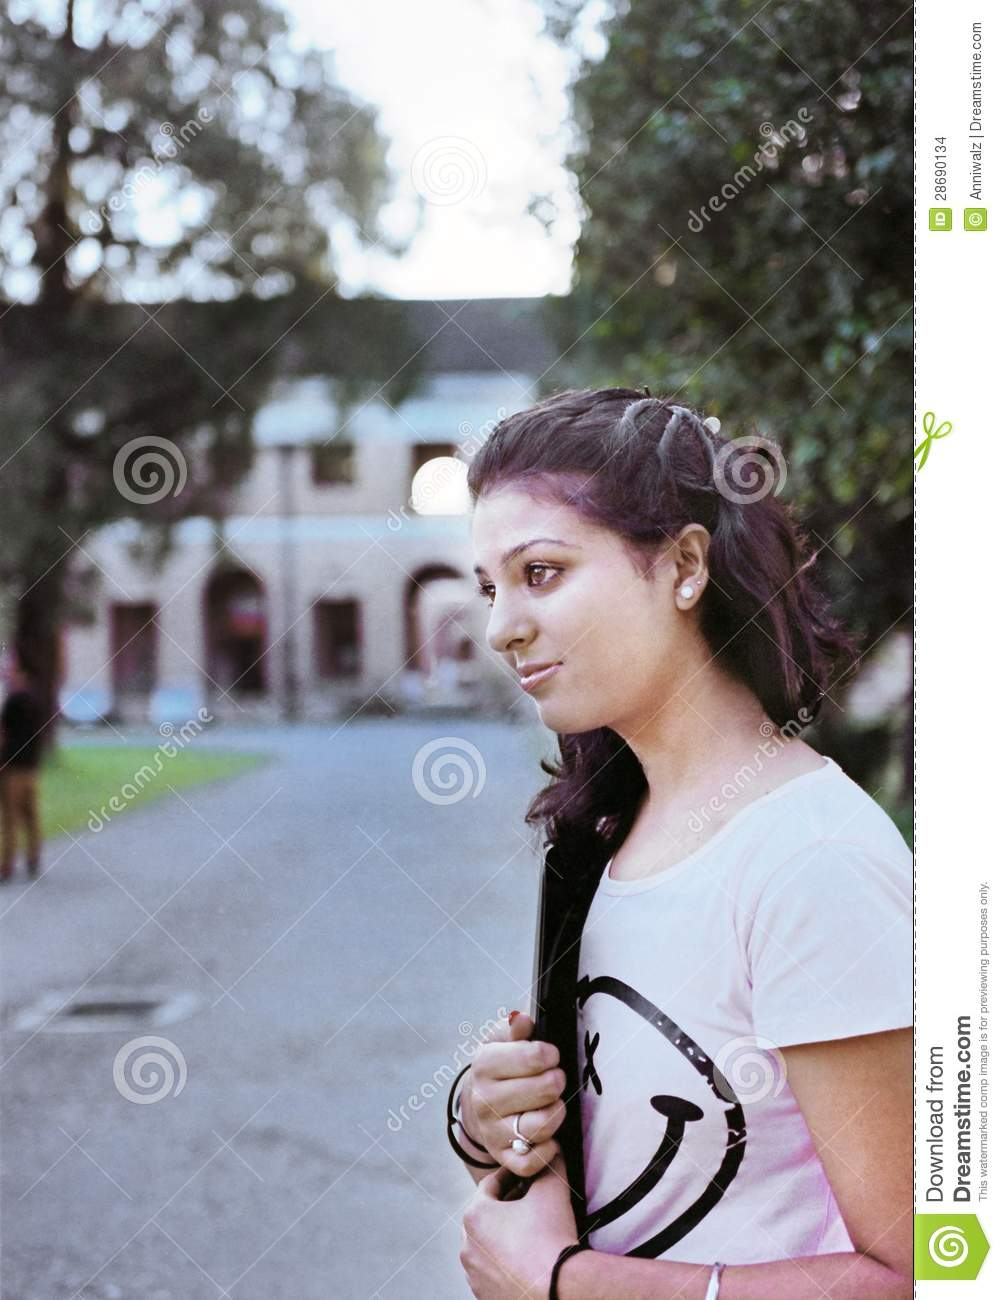 Indian College Student Going To Campus Stock Photography  Cartoondealercom 28076060-3396